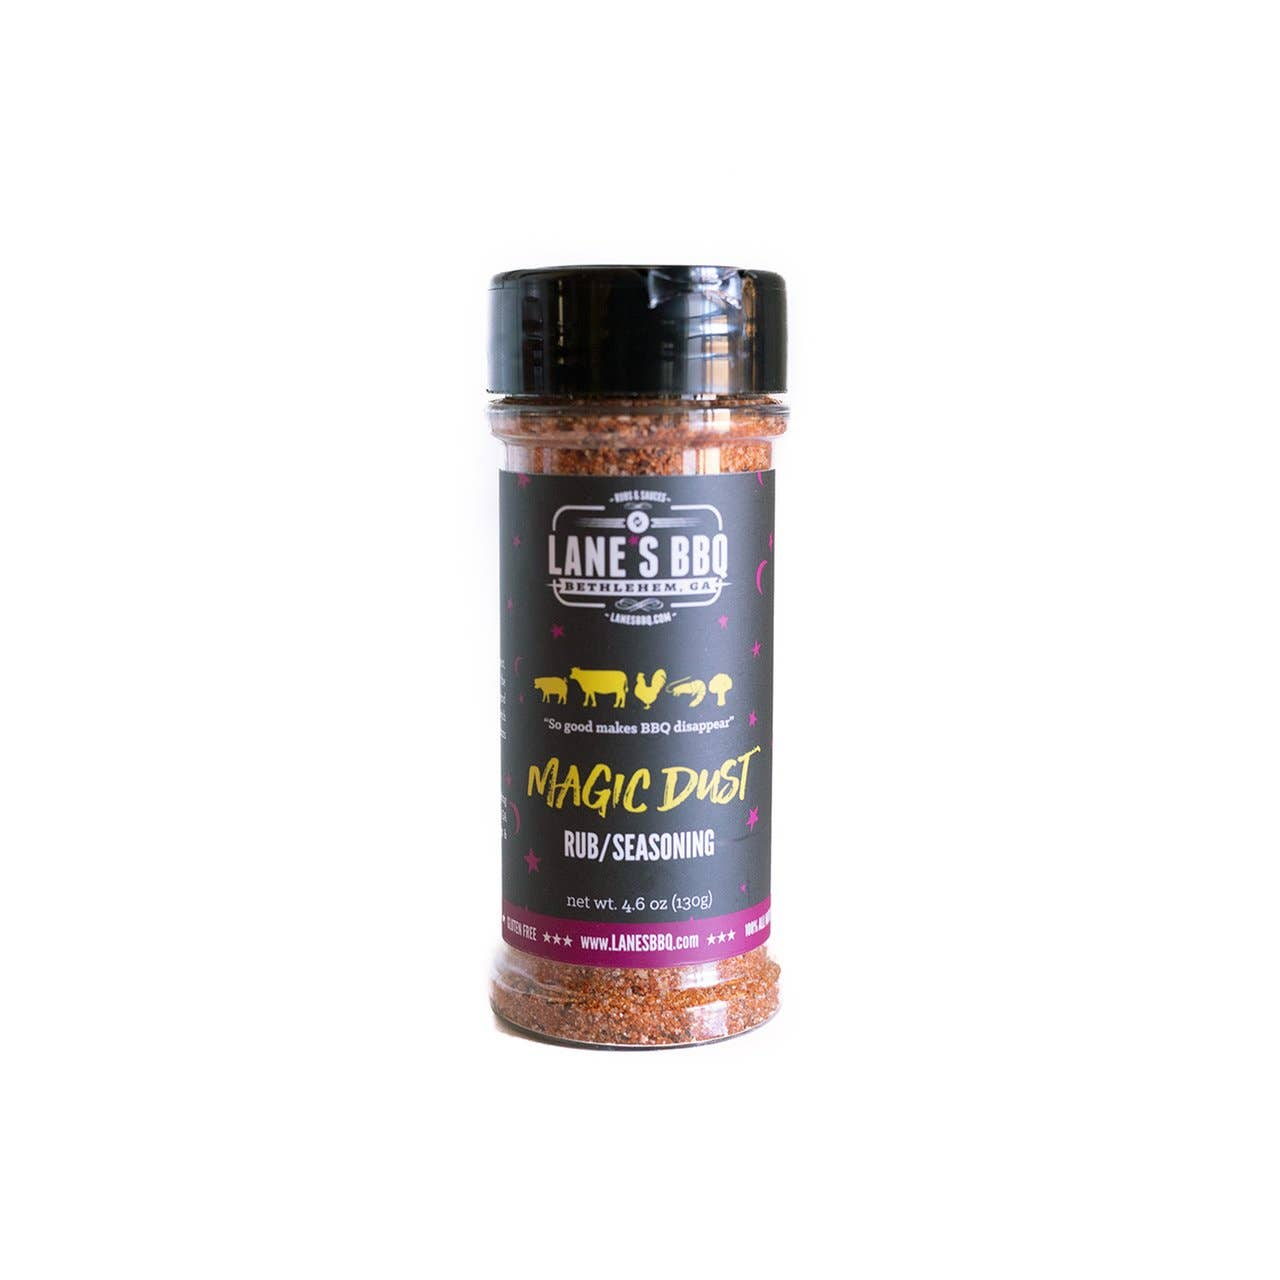 Lane's BBQ - Magic Dust Rub